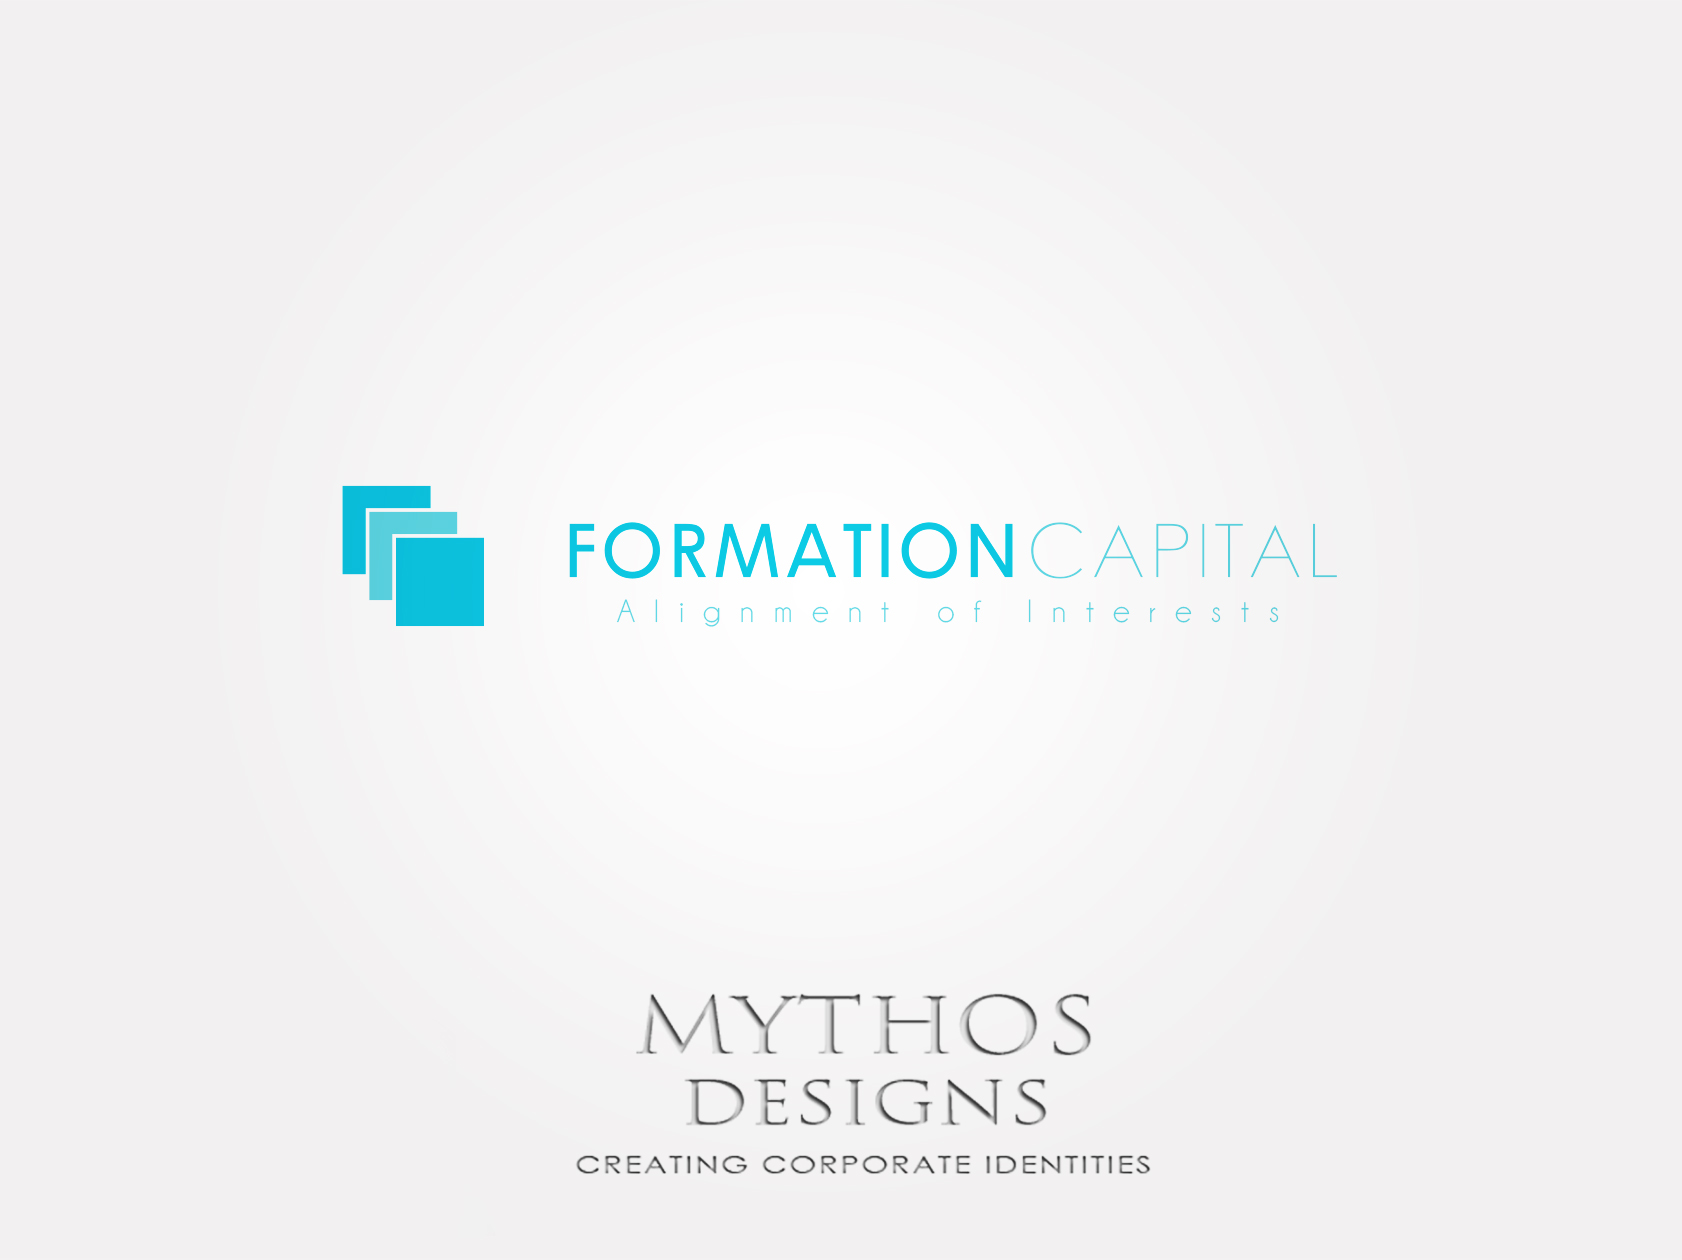 Logo Design by Mythos Designs - Entry No. 85 in the Logo Design Contest Inspiring Logo Design for Formation Capital.